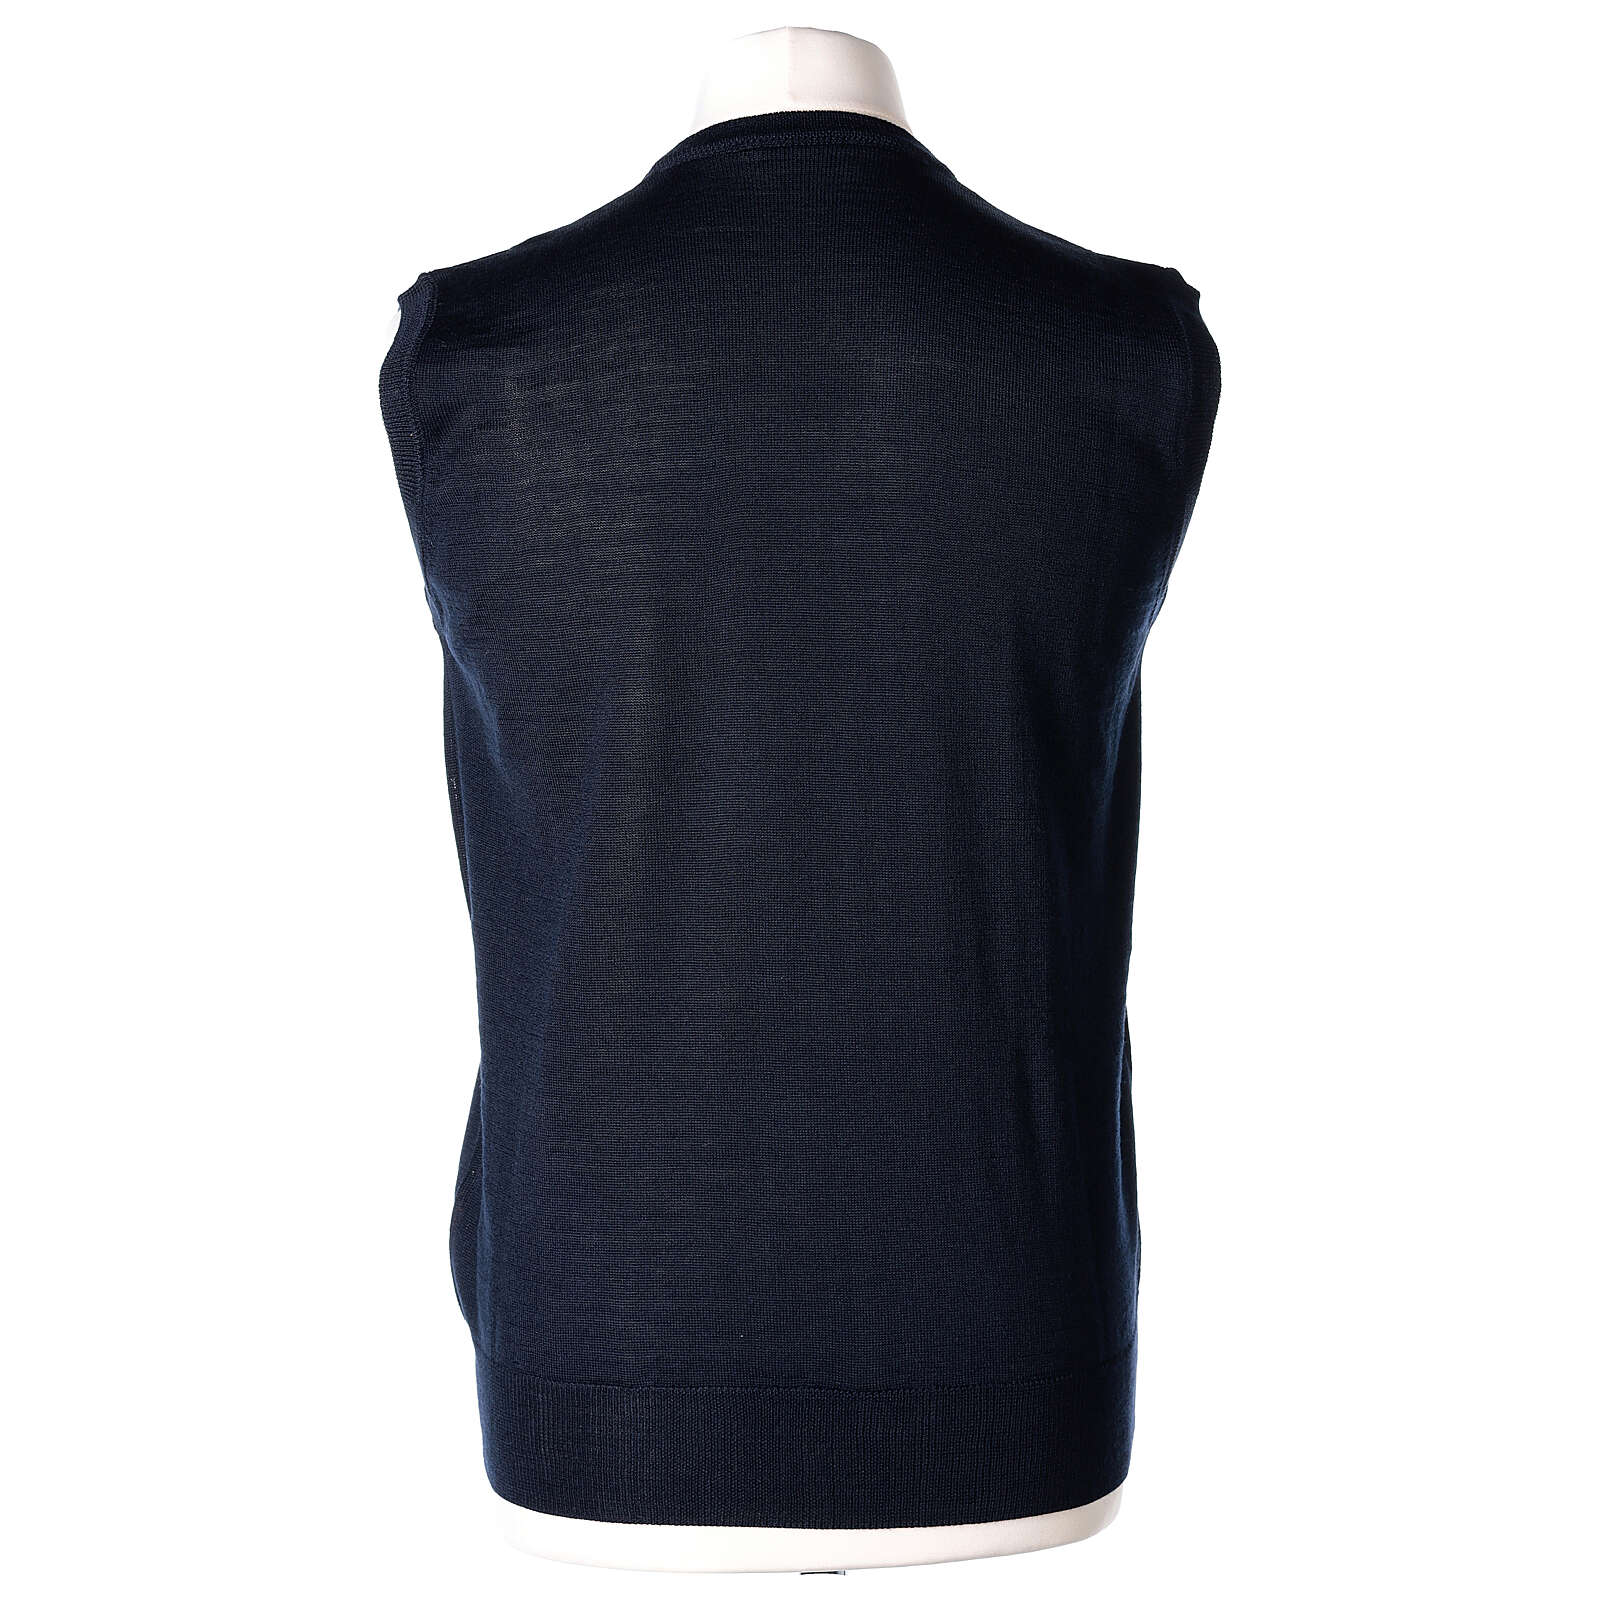 V-neck sleeveless clergy jumper blue plain knit 50% merino wool 50% acrylic In Primis 4